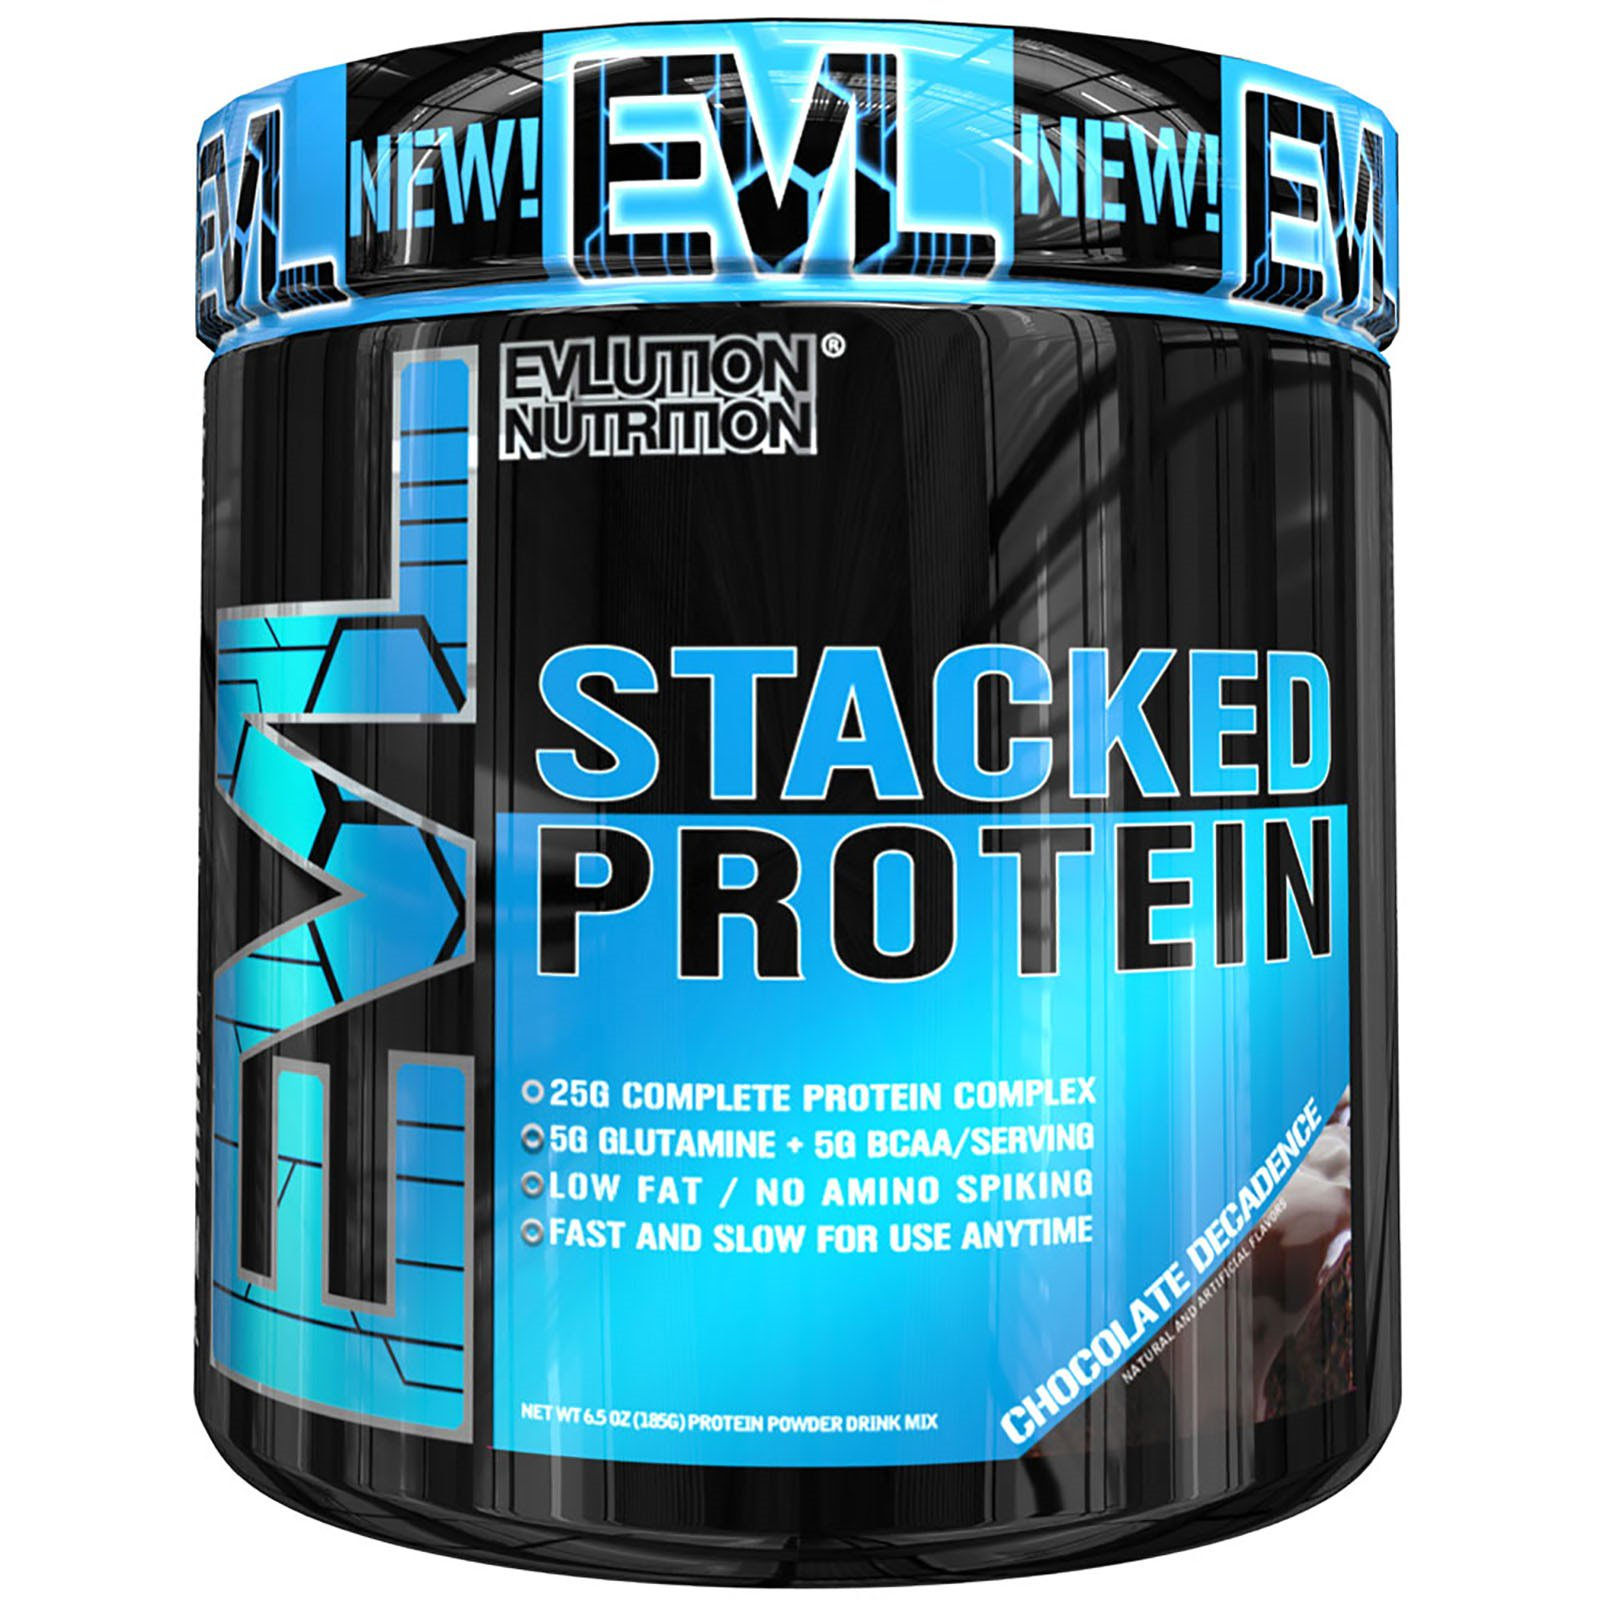 EVLution Nutrition, Stacked Protein Powder Drink Mix, Chocolate Decadence, 6.5 oz (185 g)